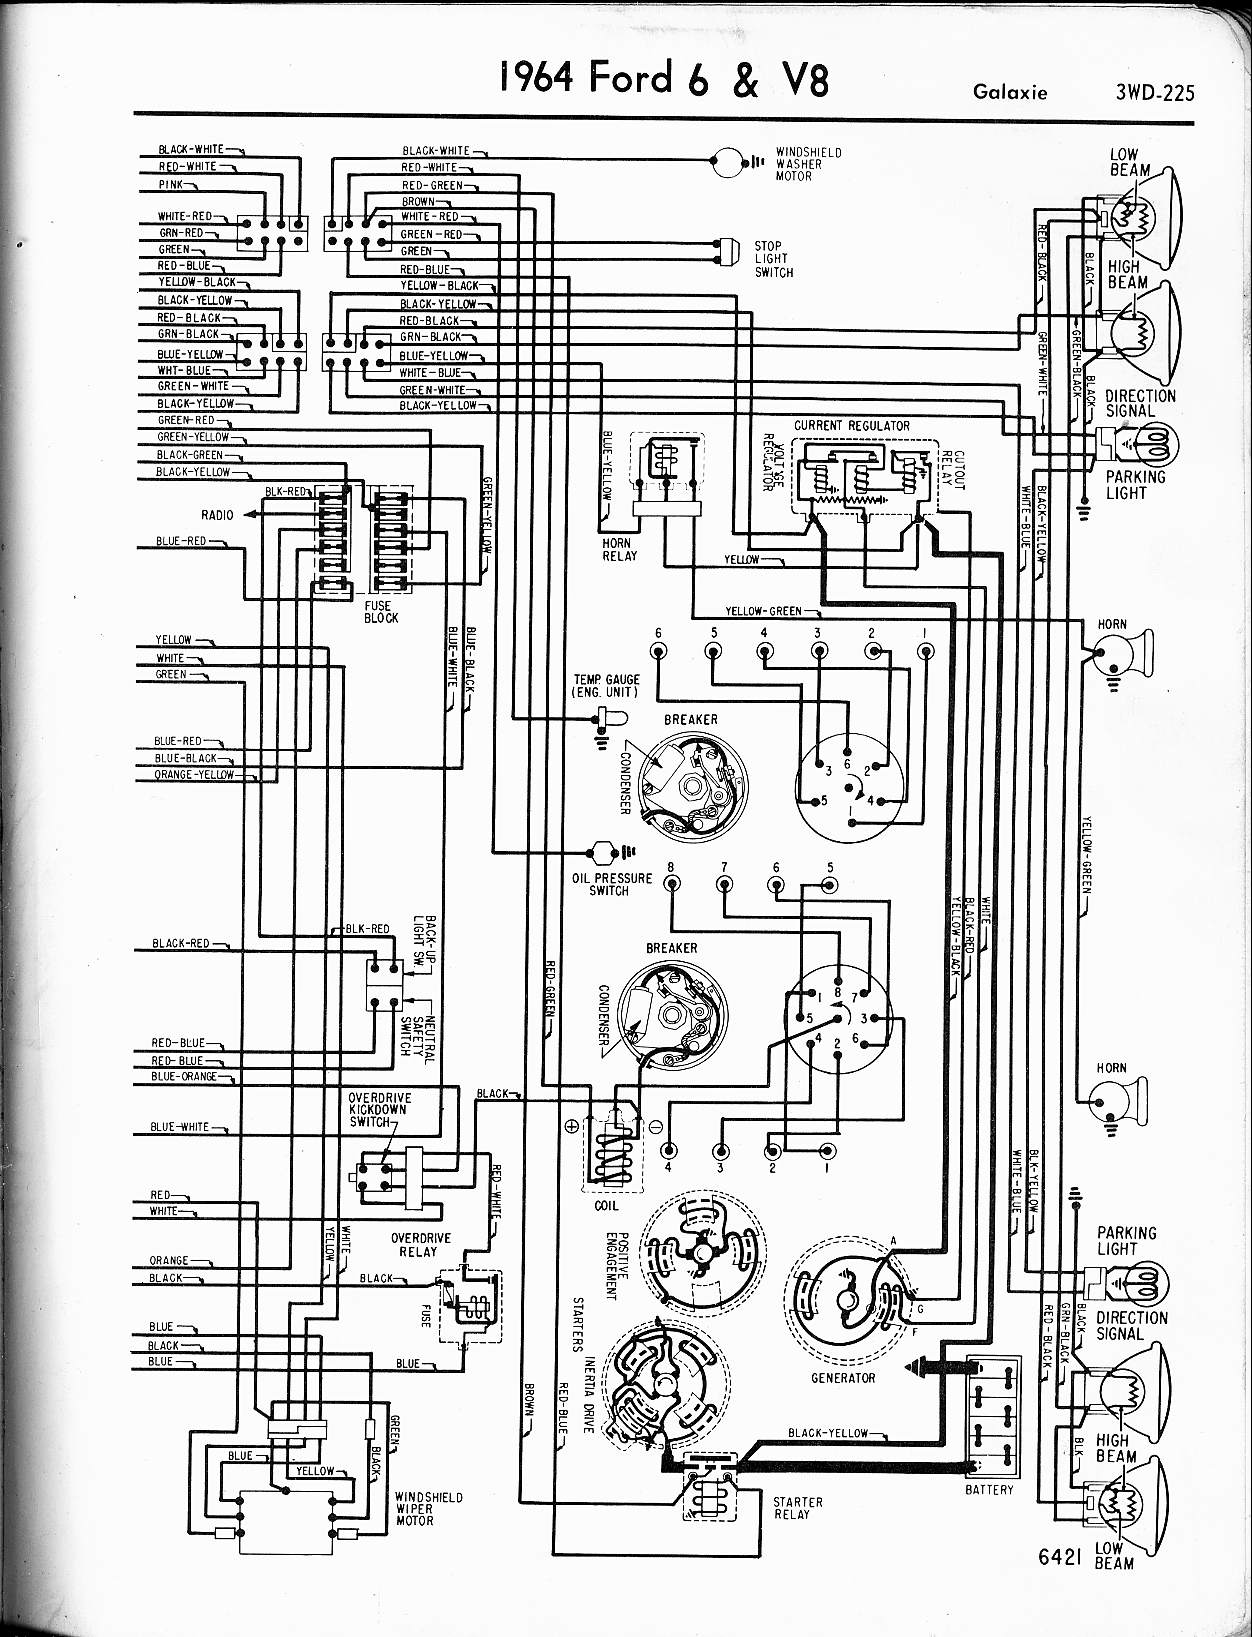 MWire5765 225 57 65 ford wiring diagrams Ford E 350 Wiring Diagrams at eliteediting.co